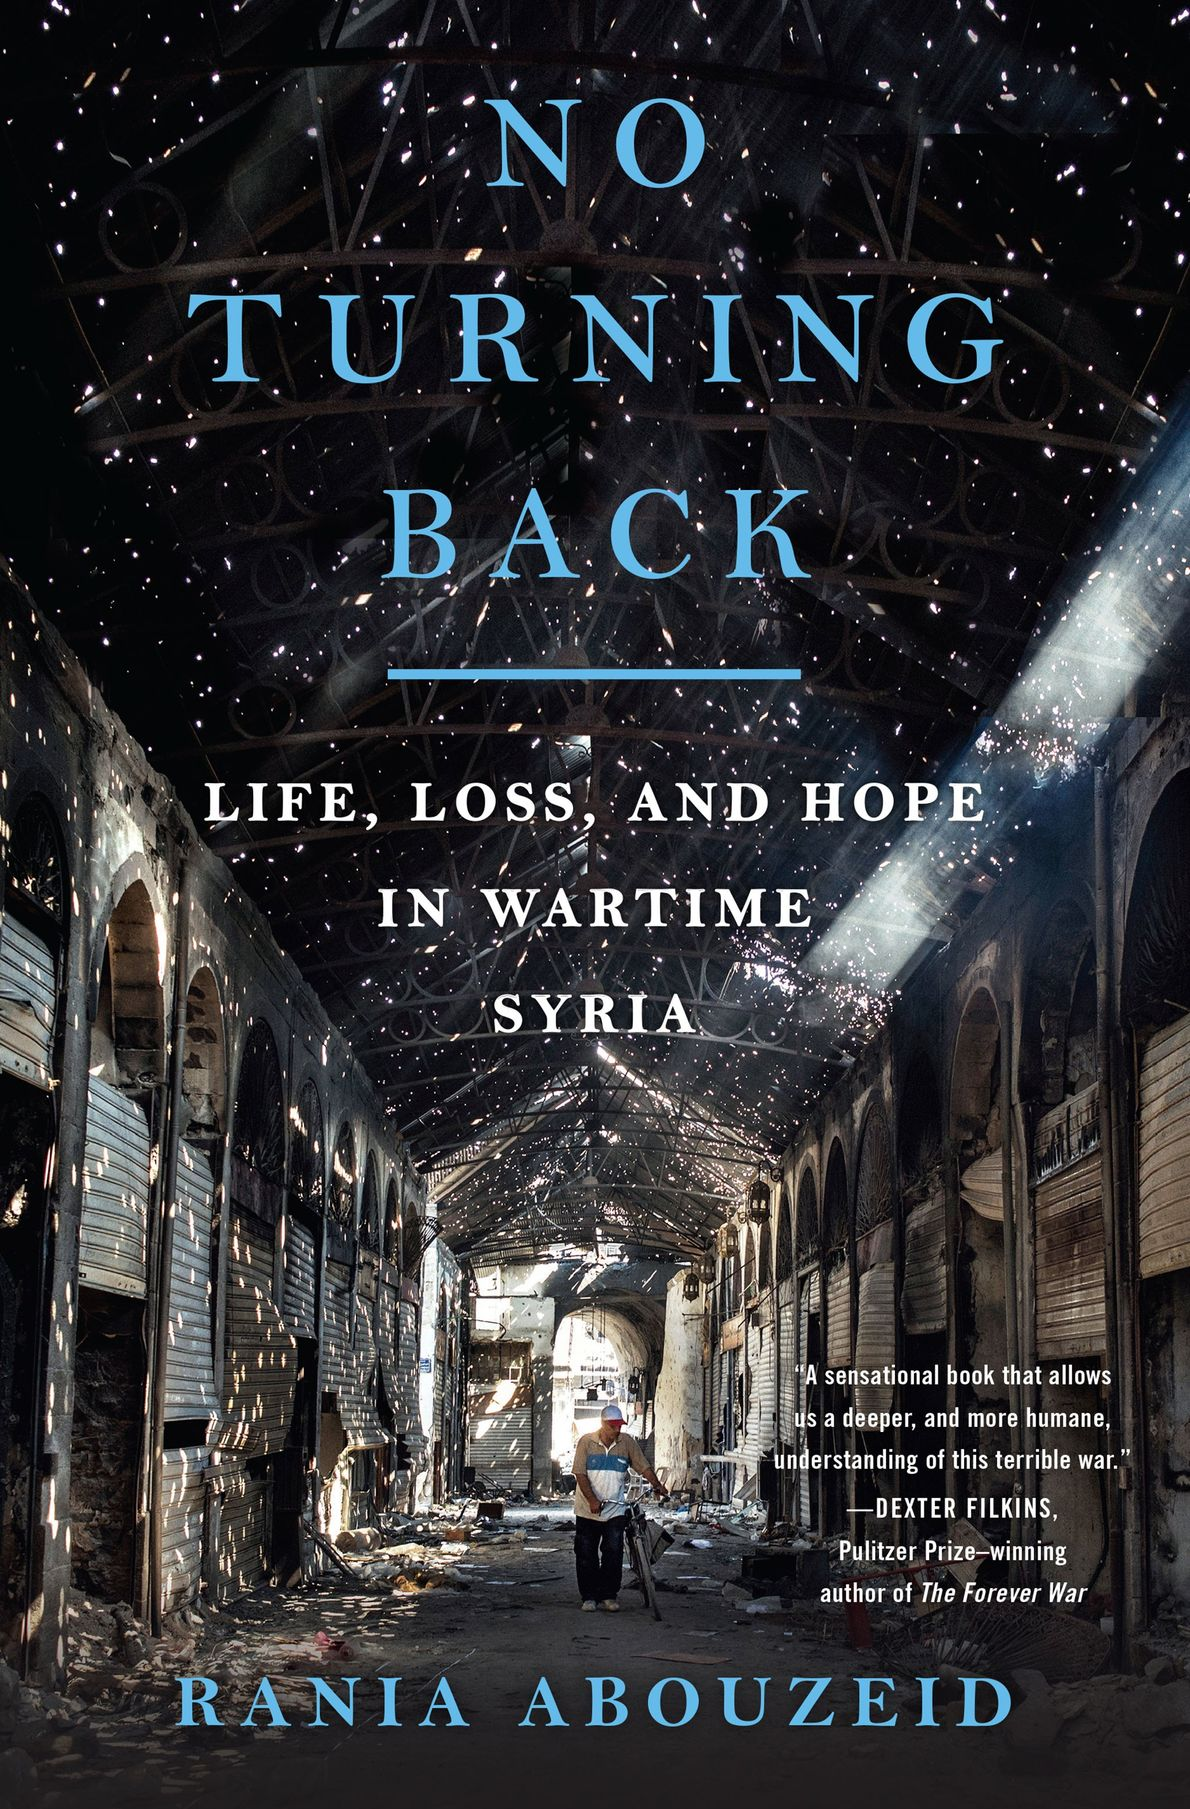 Cover art for No Turning Back